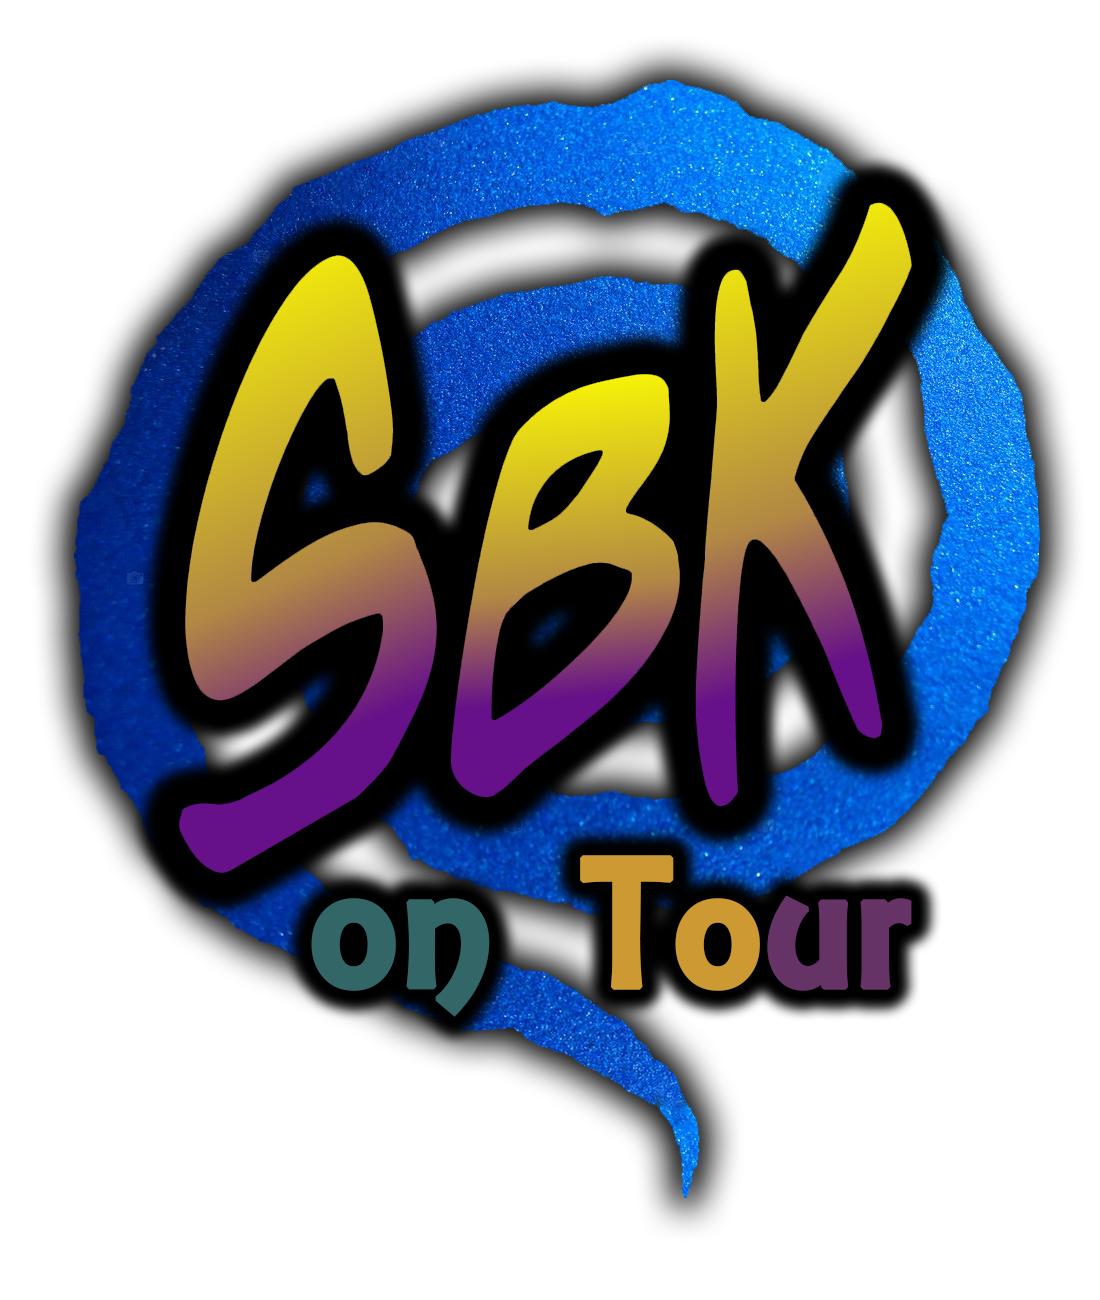 SBK on Tour - YouTube-Kanal aus dem Nürnberger Süden